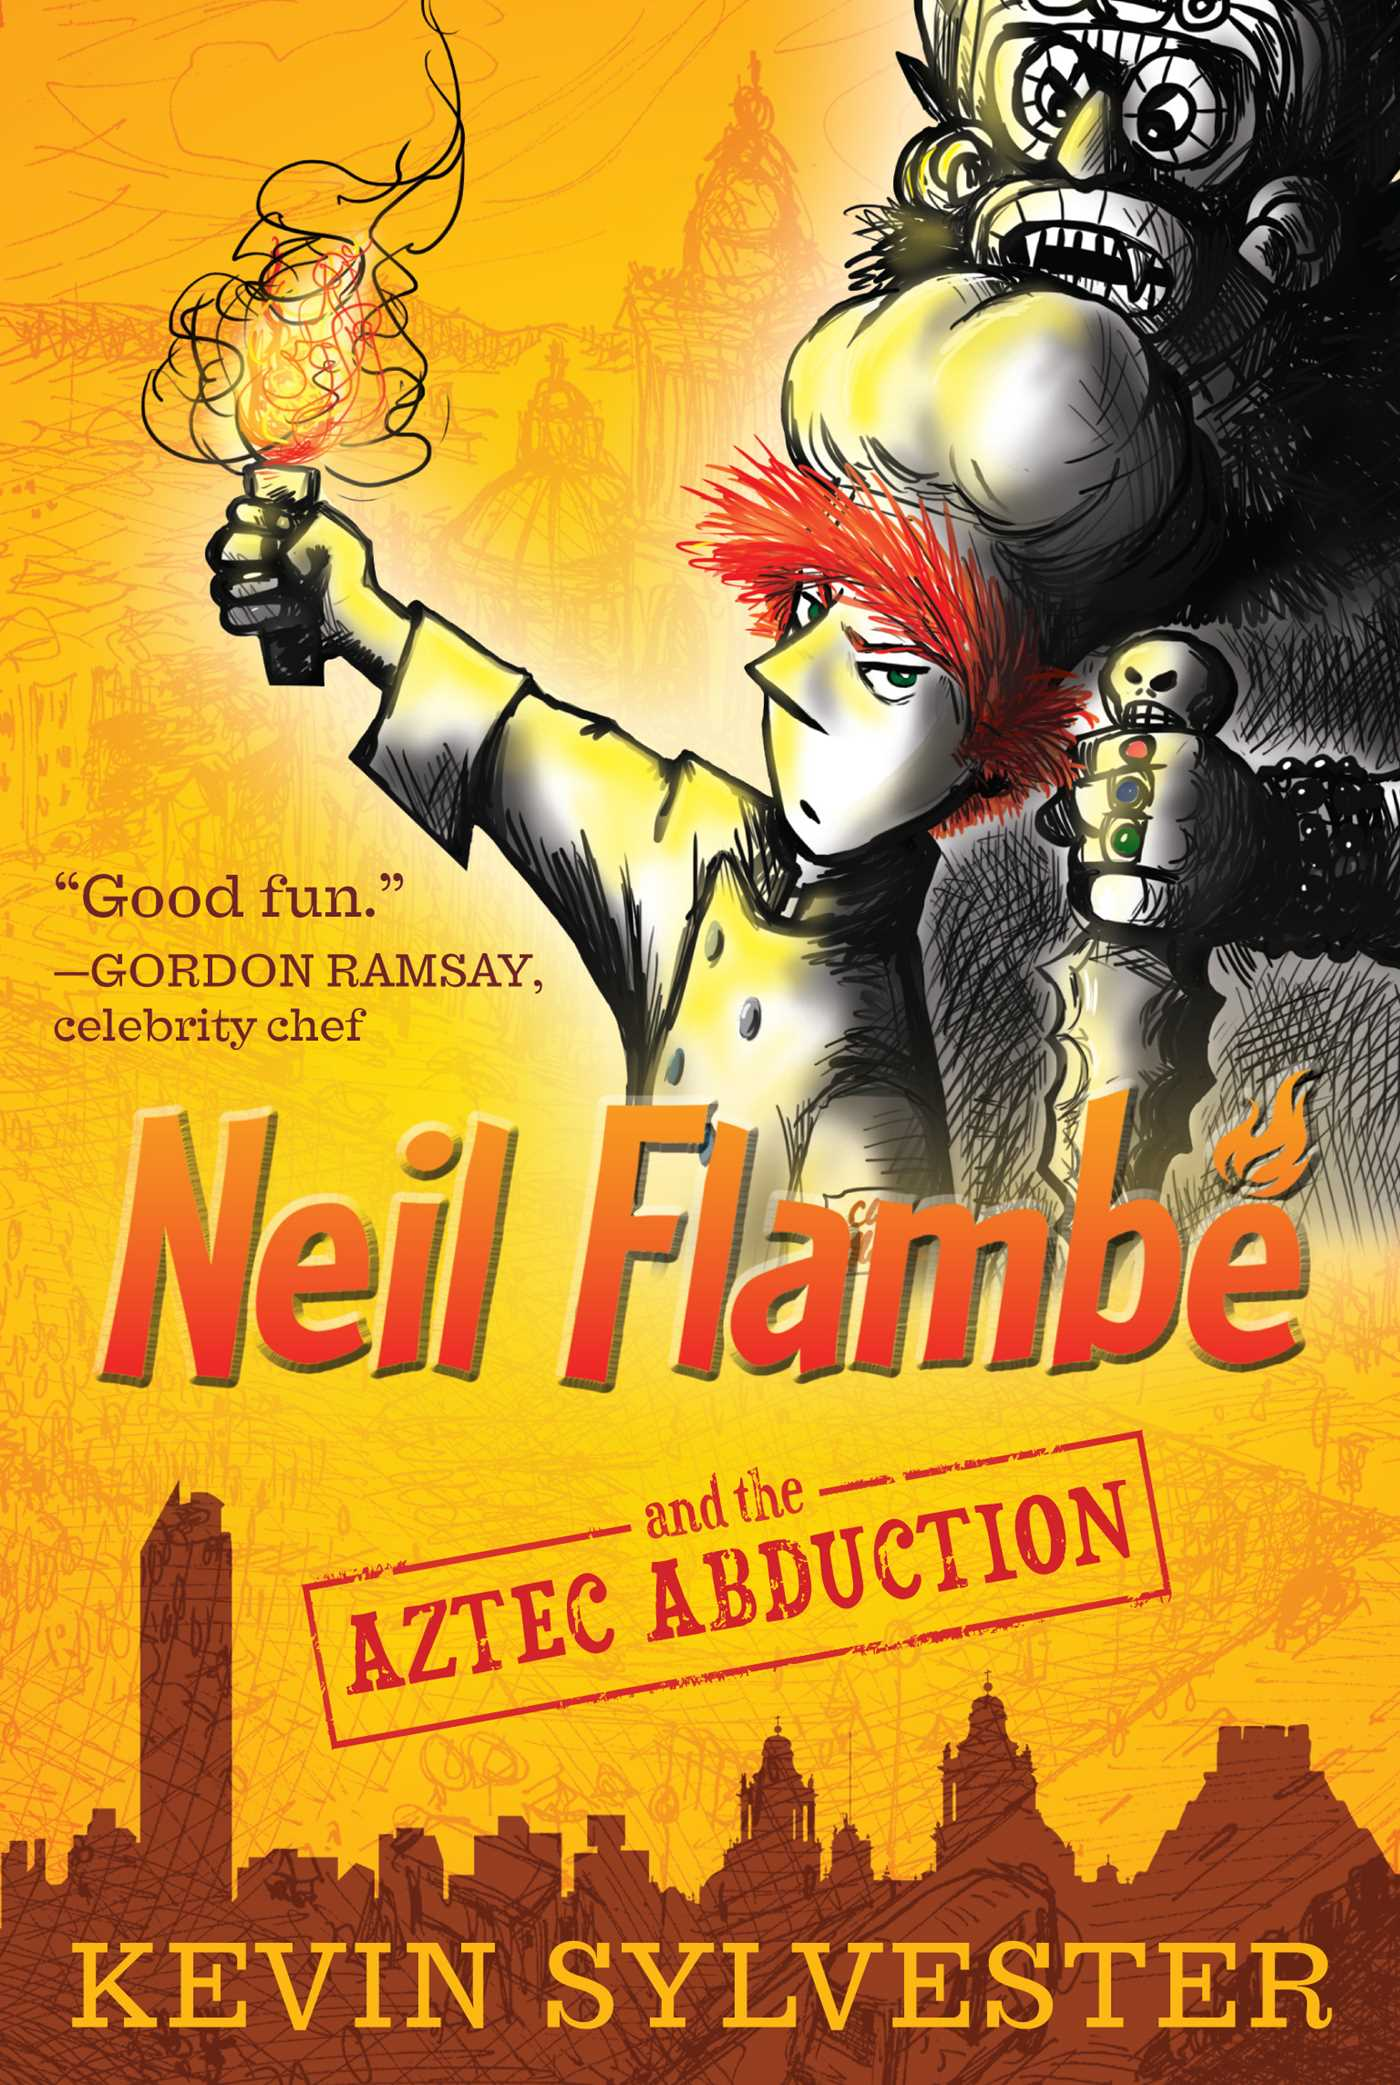 Neil flambe and the aztec abduction 9781442446083 hr